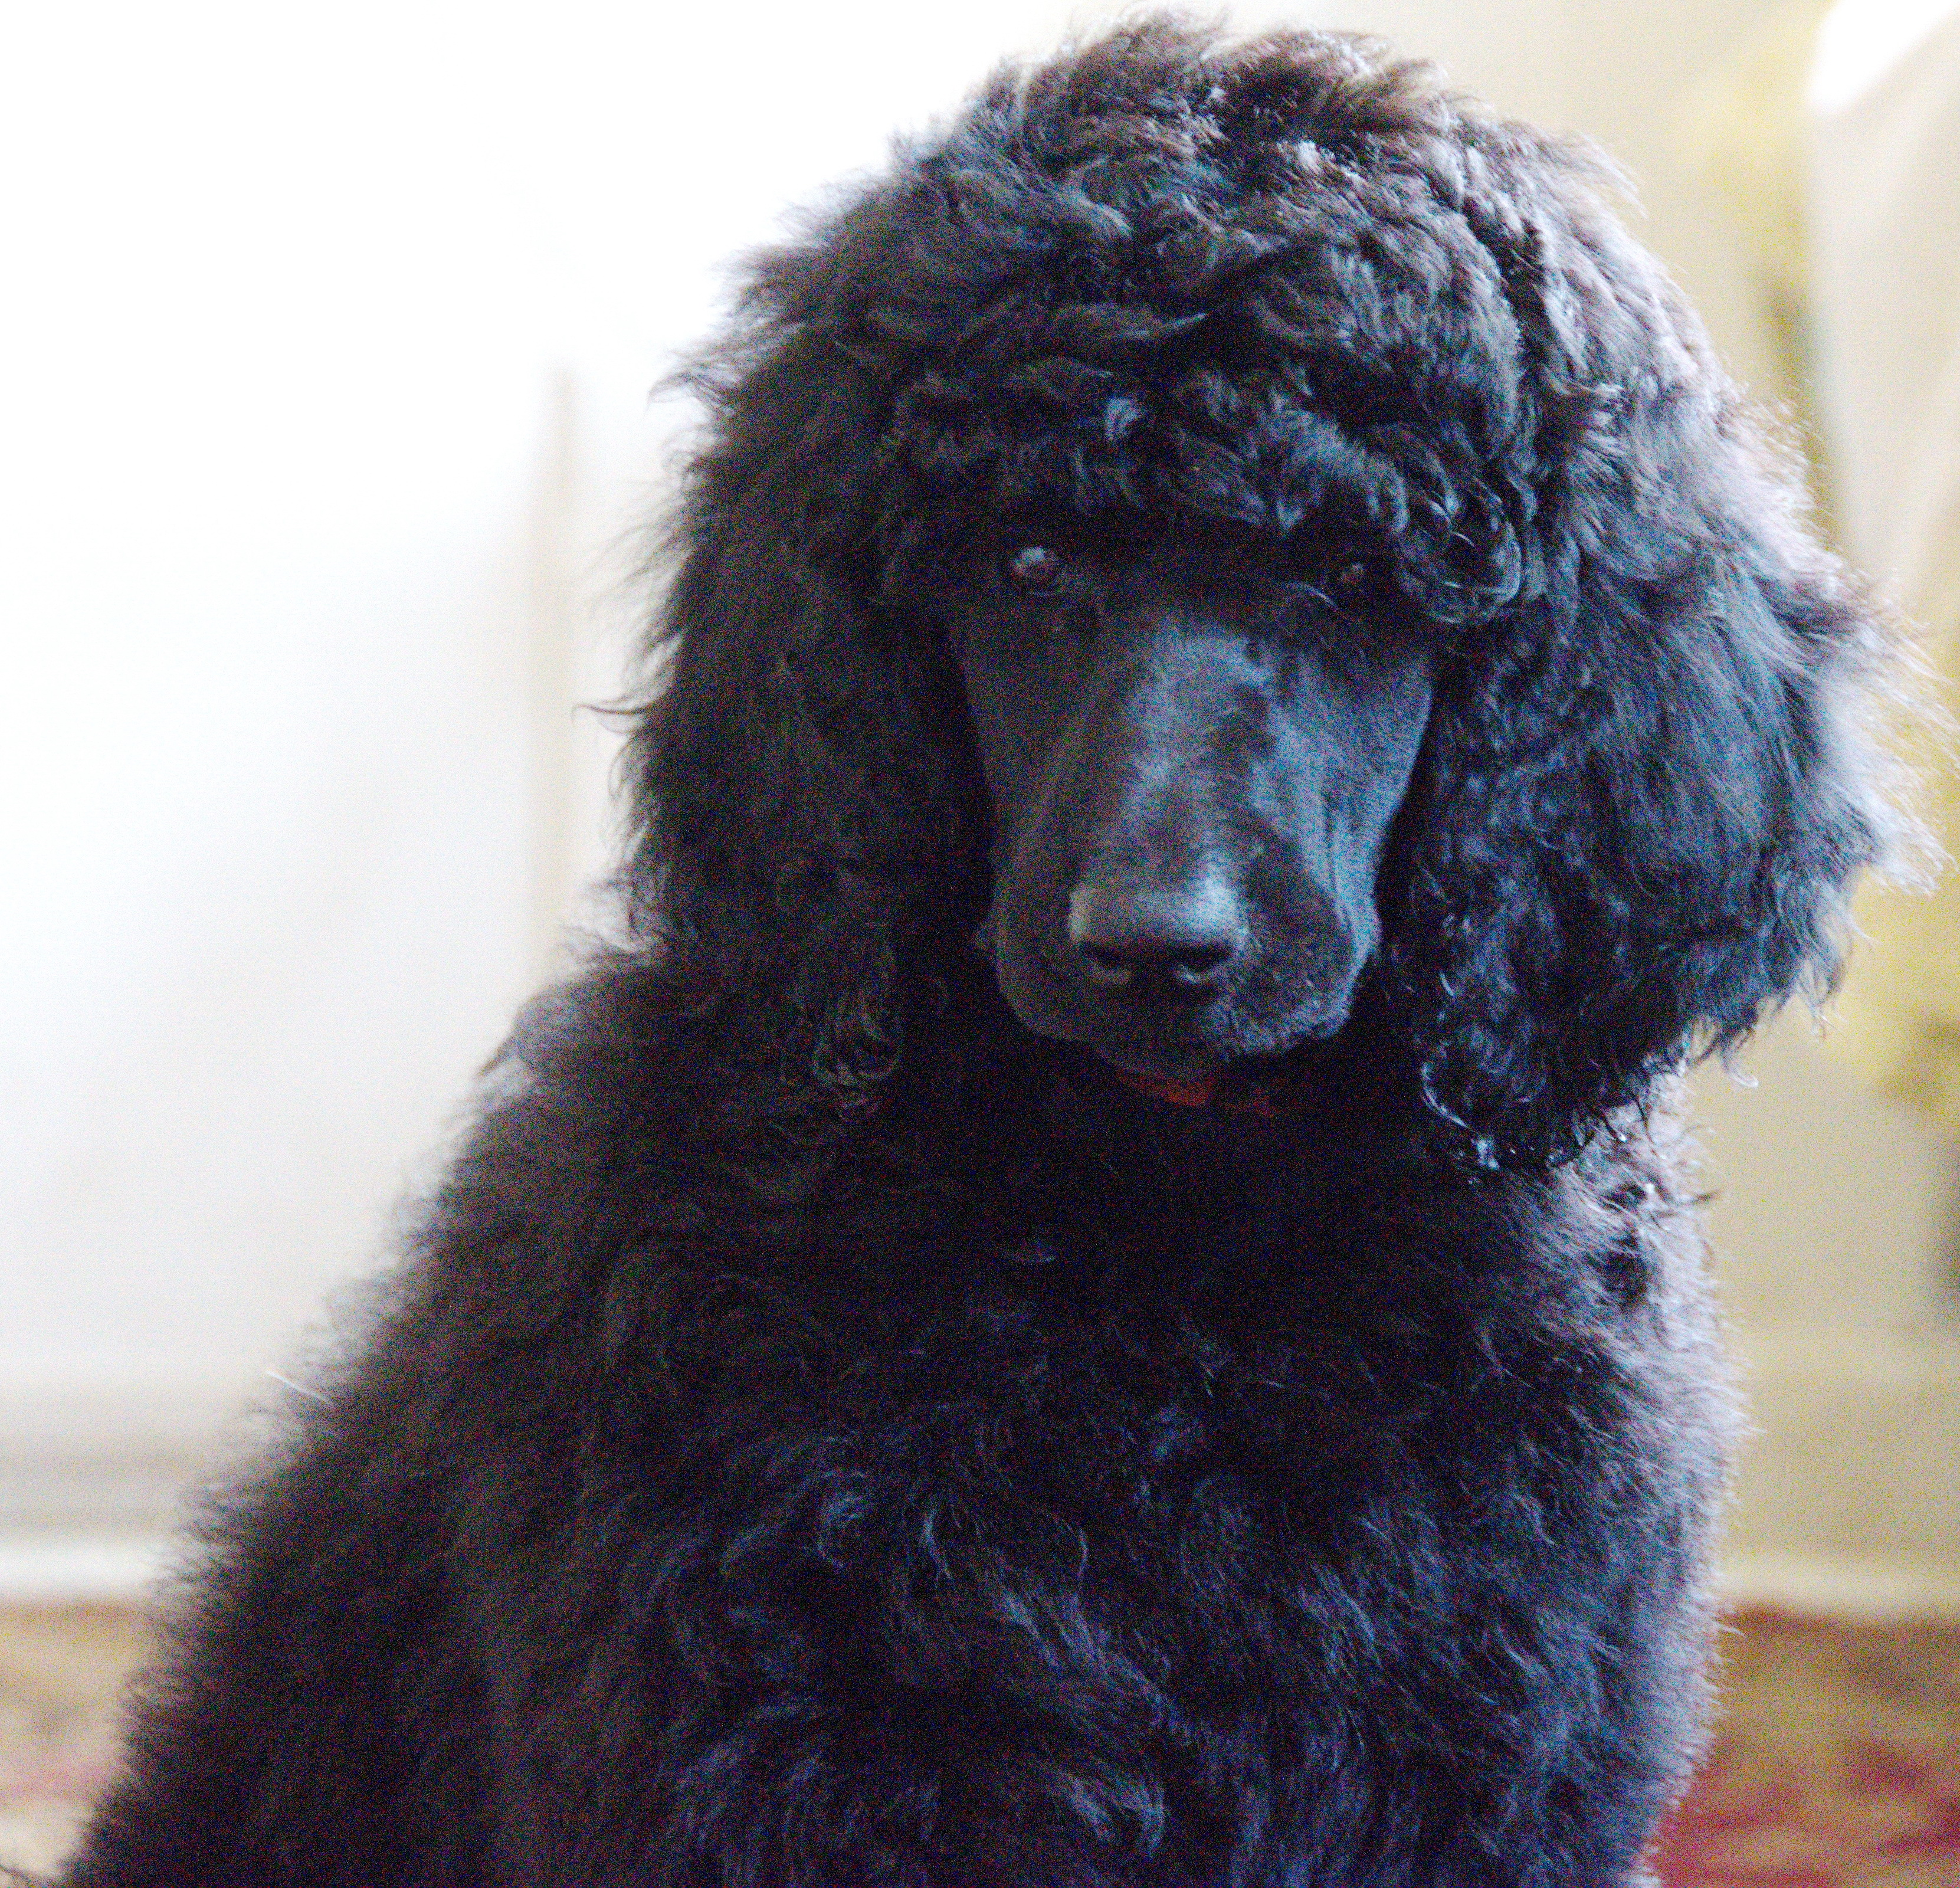 Chloe Akc Poodle Puppy In Clearwater Florida For Sale Vip Puppies